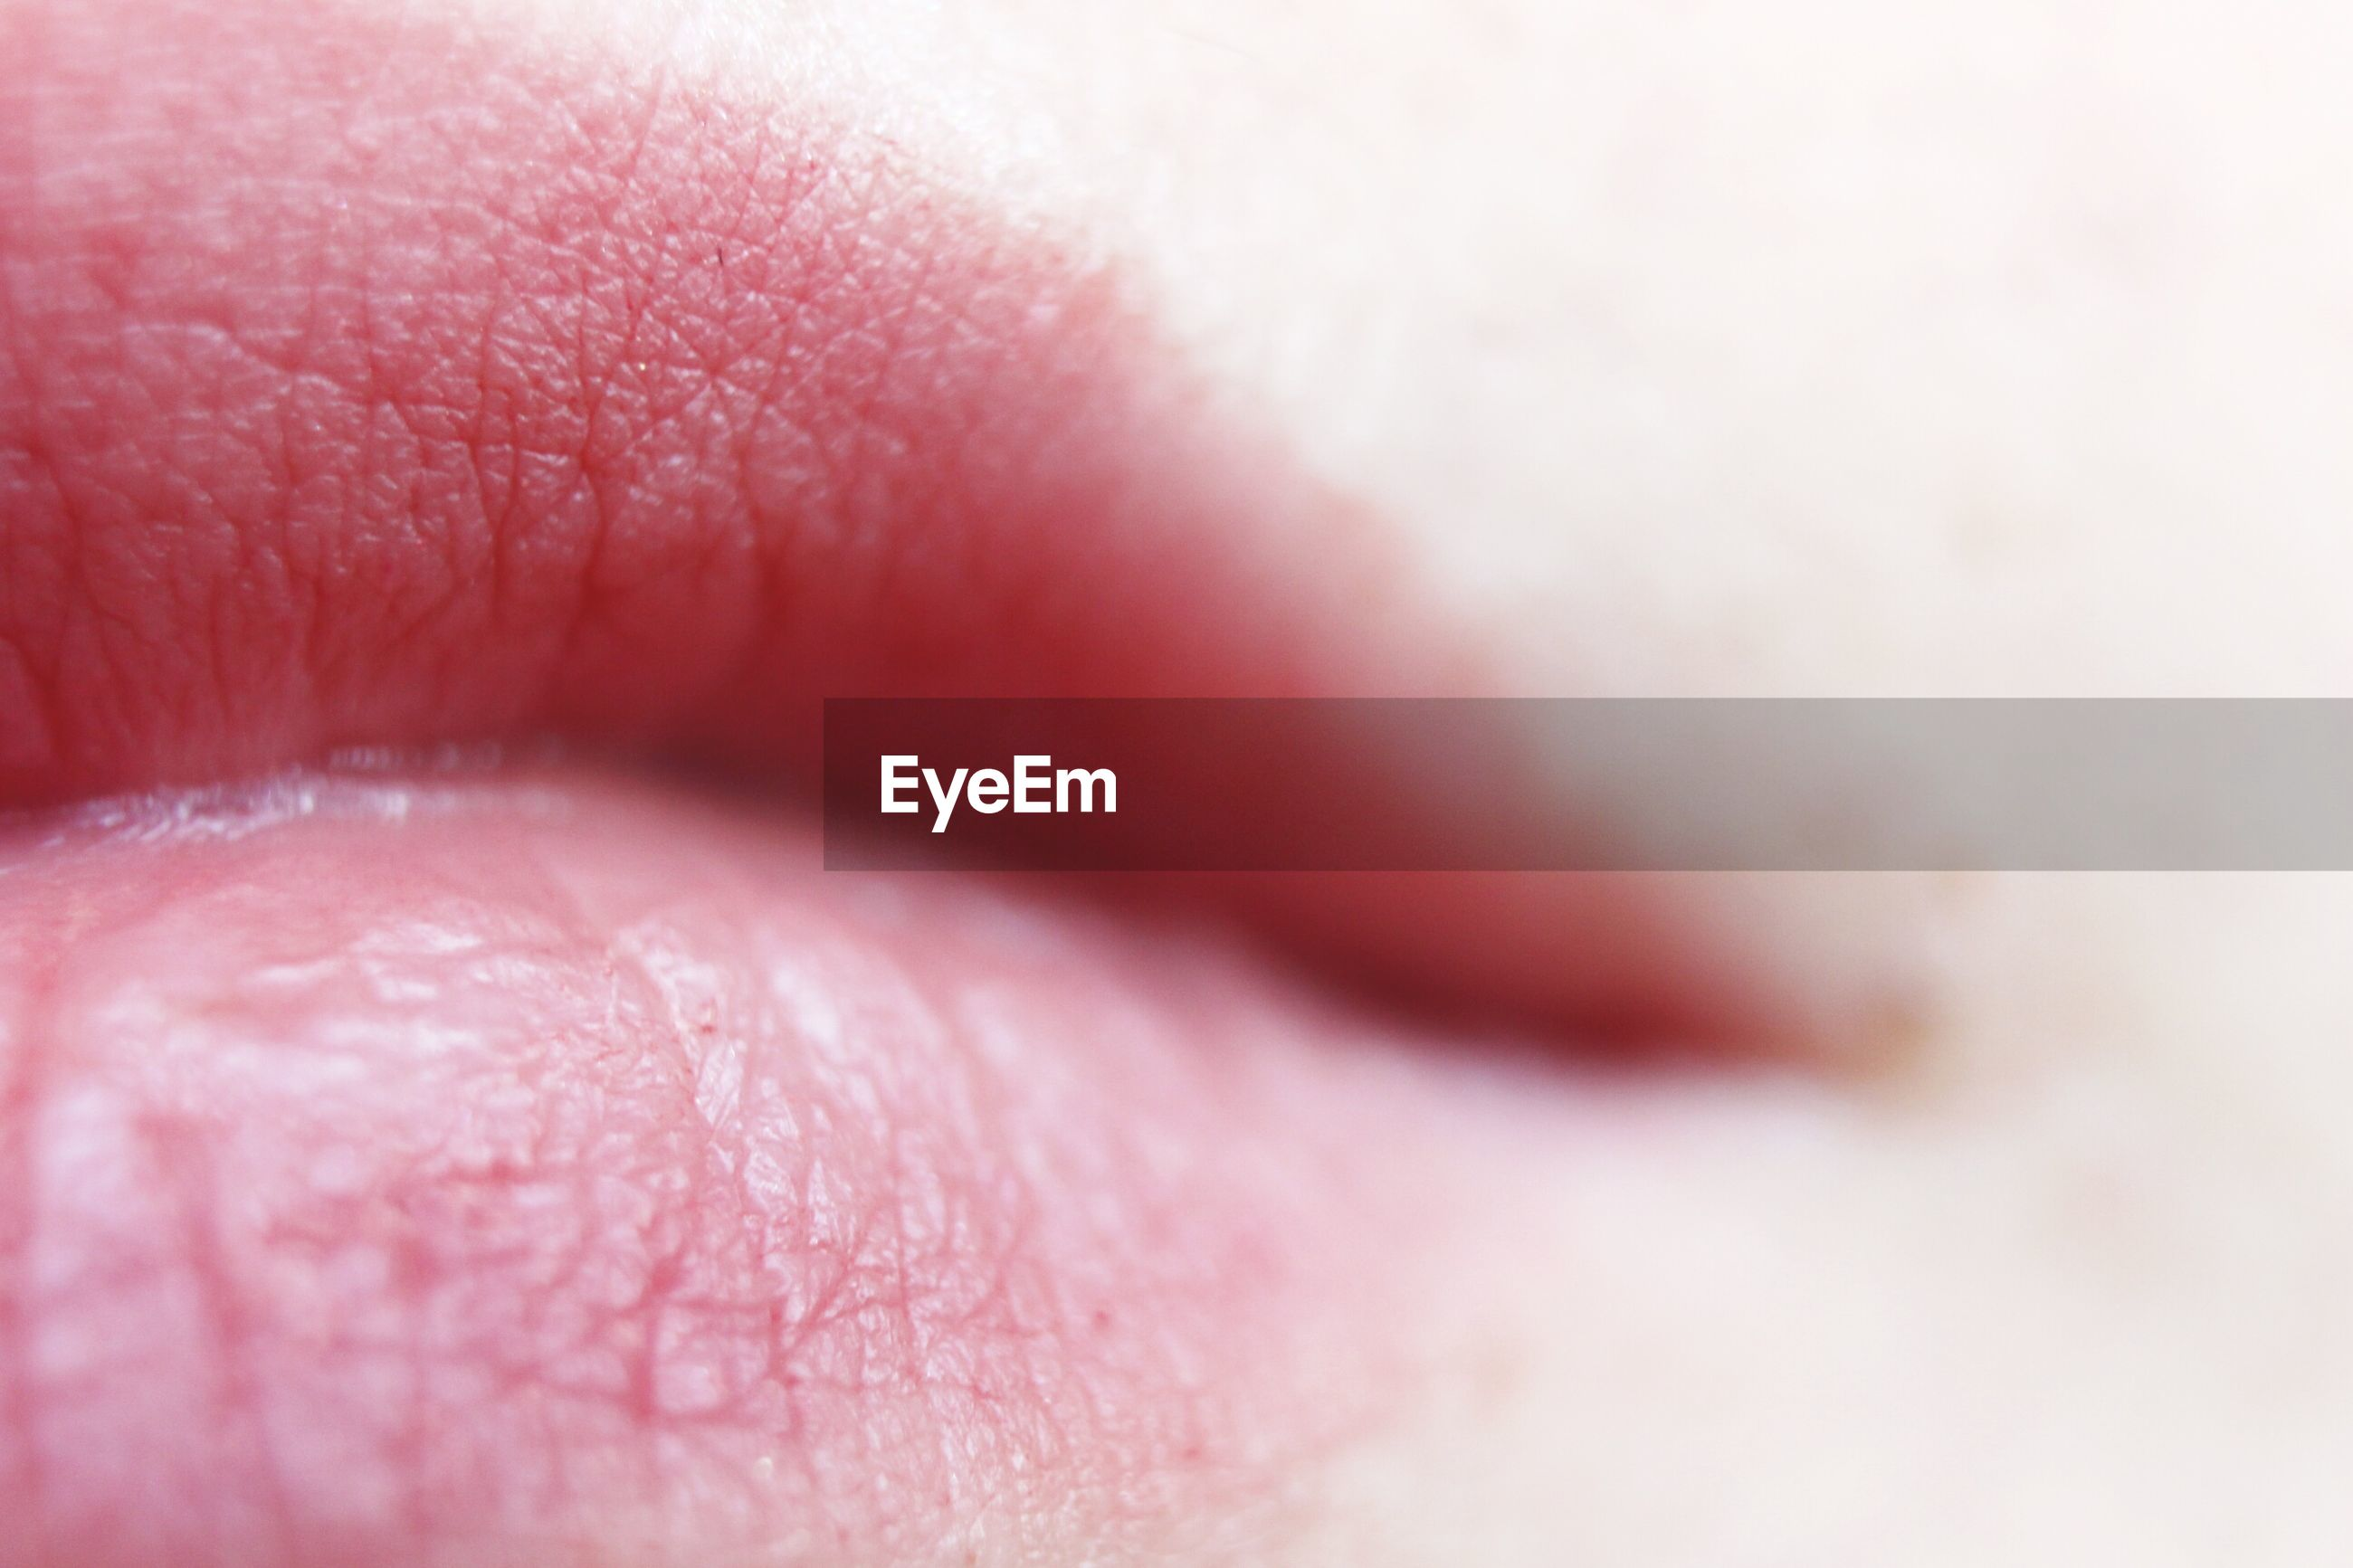 Close-up of human lips